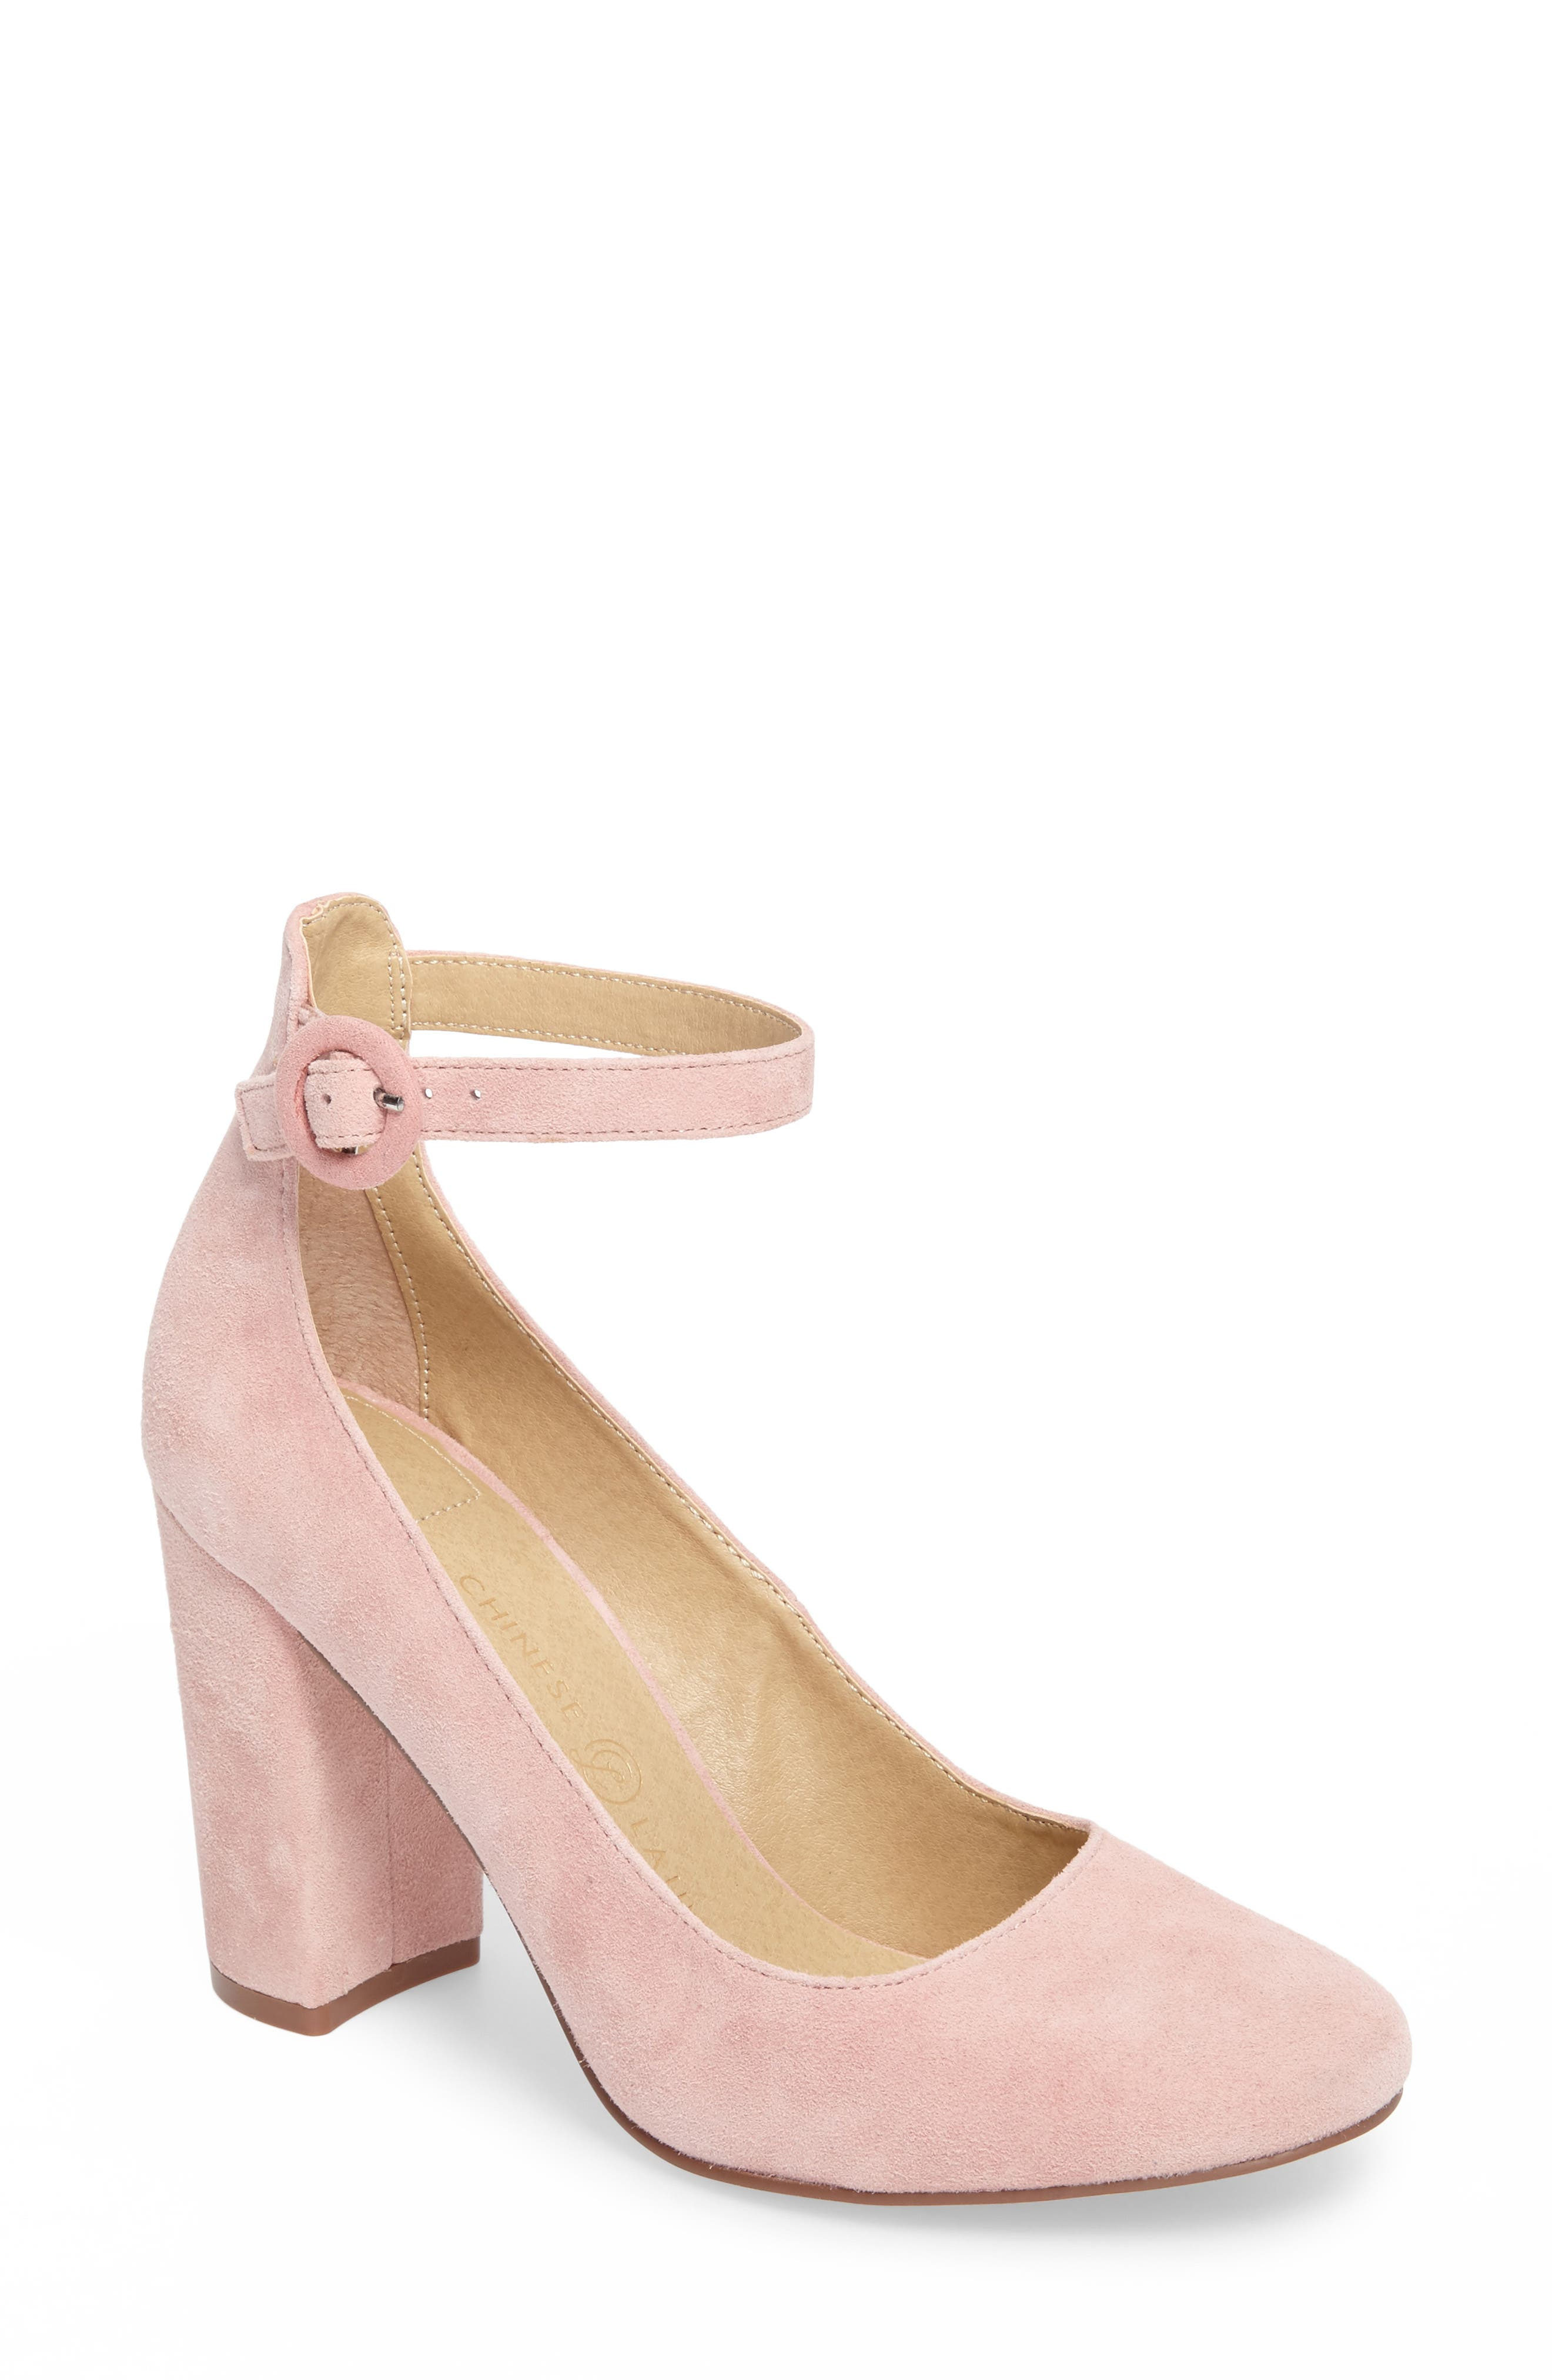 Veronika Pump,                             Main thumbnail 1, color,                             Rose Suede